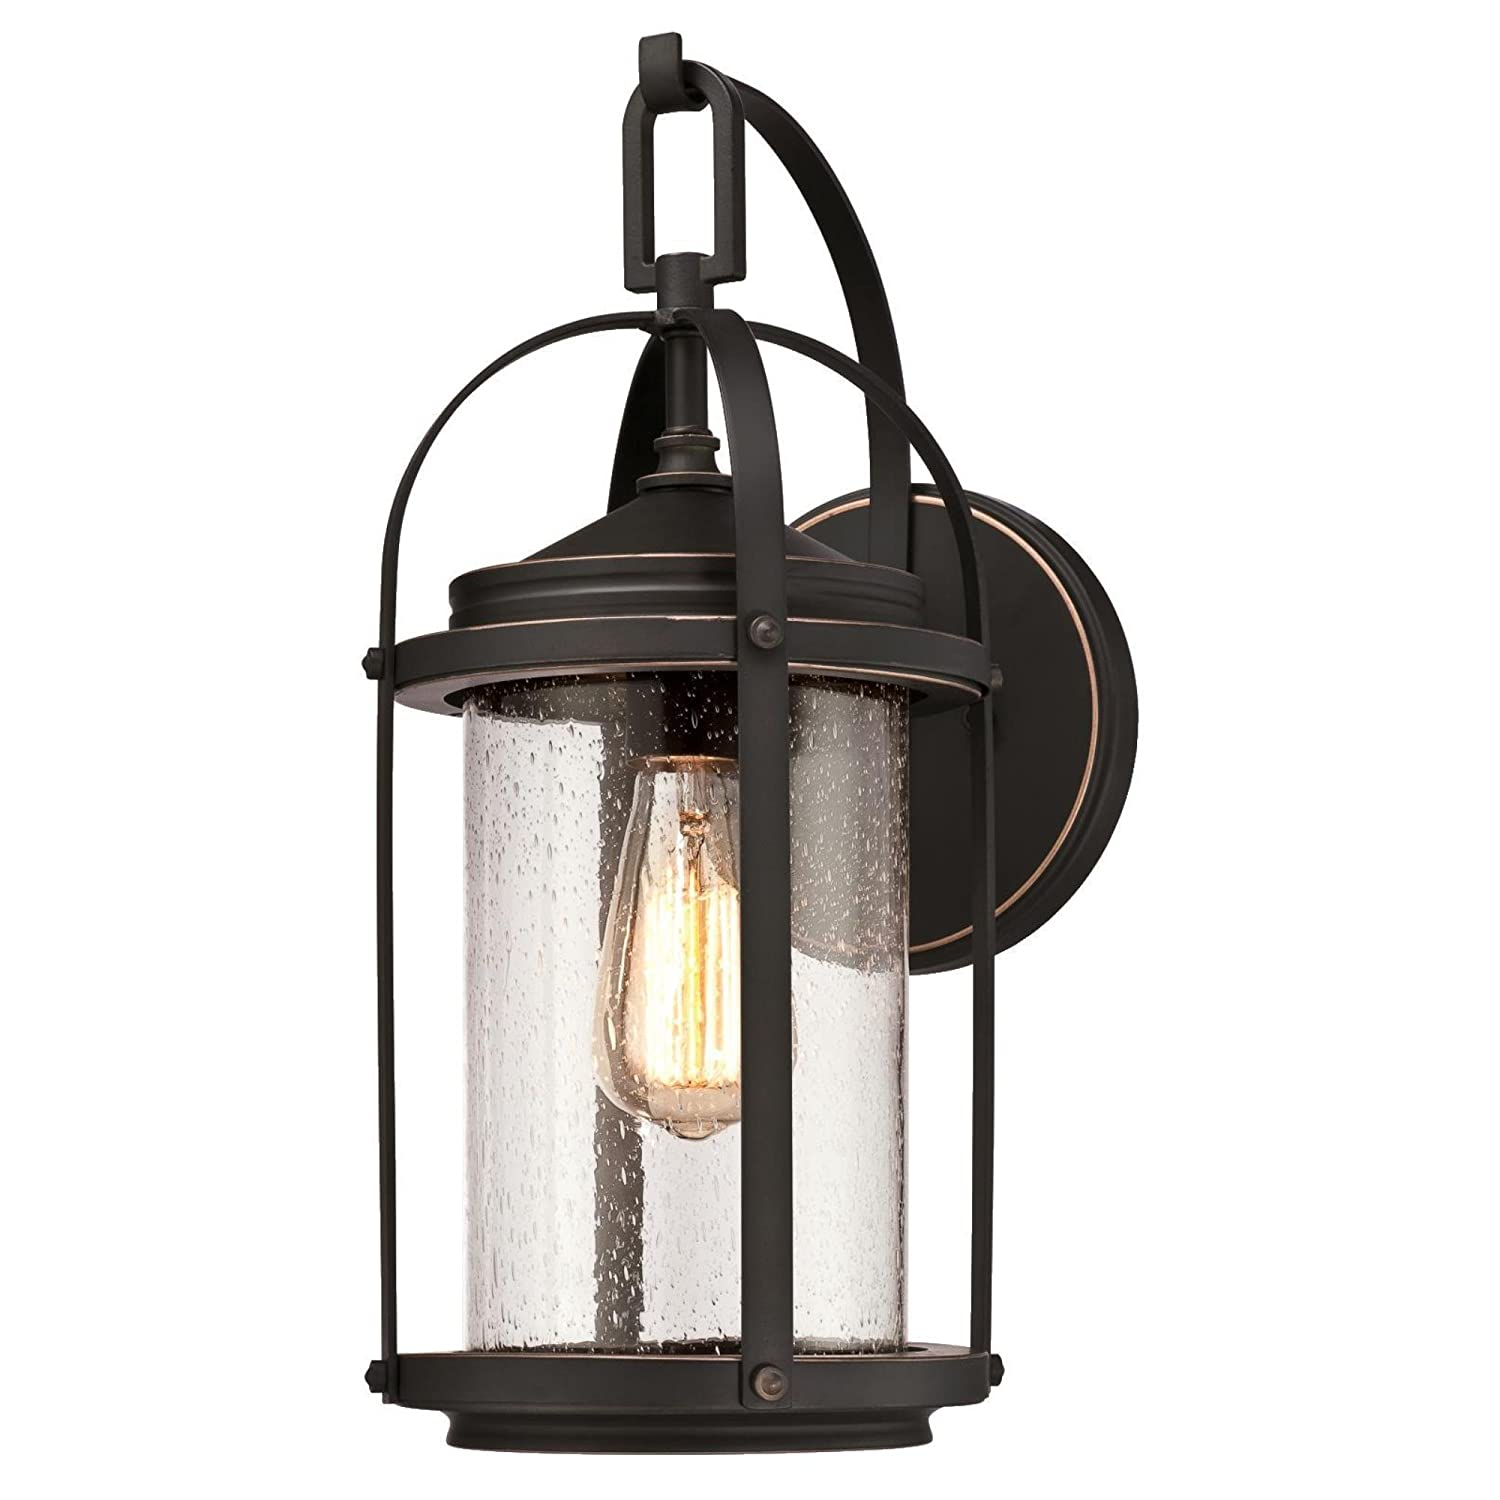 Oil Rubbed Bronze Wall Sconce Option Style Westinghouse Lighting 6339300 Grandview One-Light Outdoor Wall Fixture, Oil  Rubbed Bronze Finish with Highlights and Clear Seeded Glass - - Amazon.com